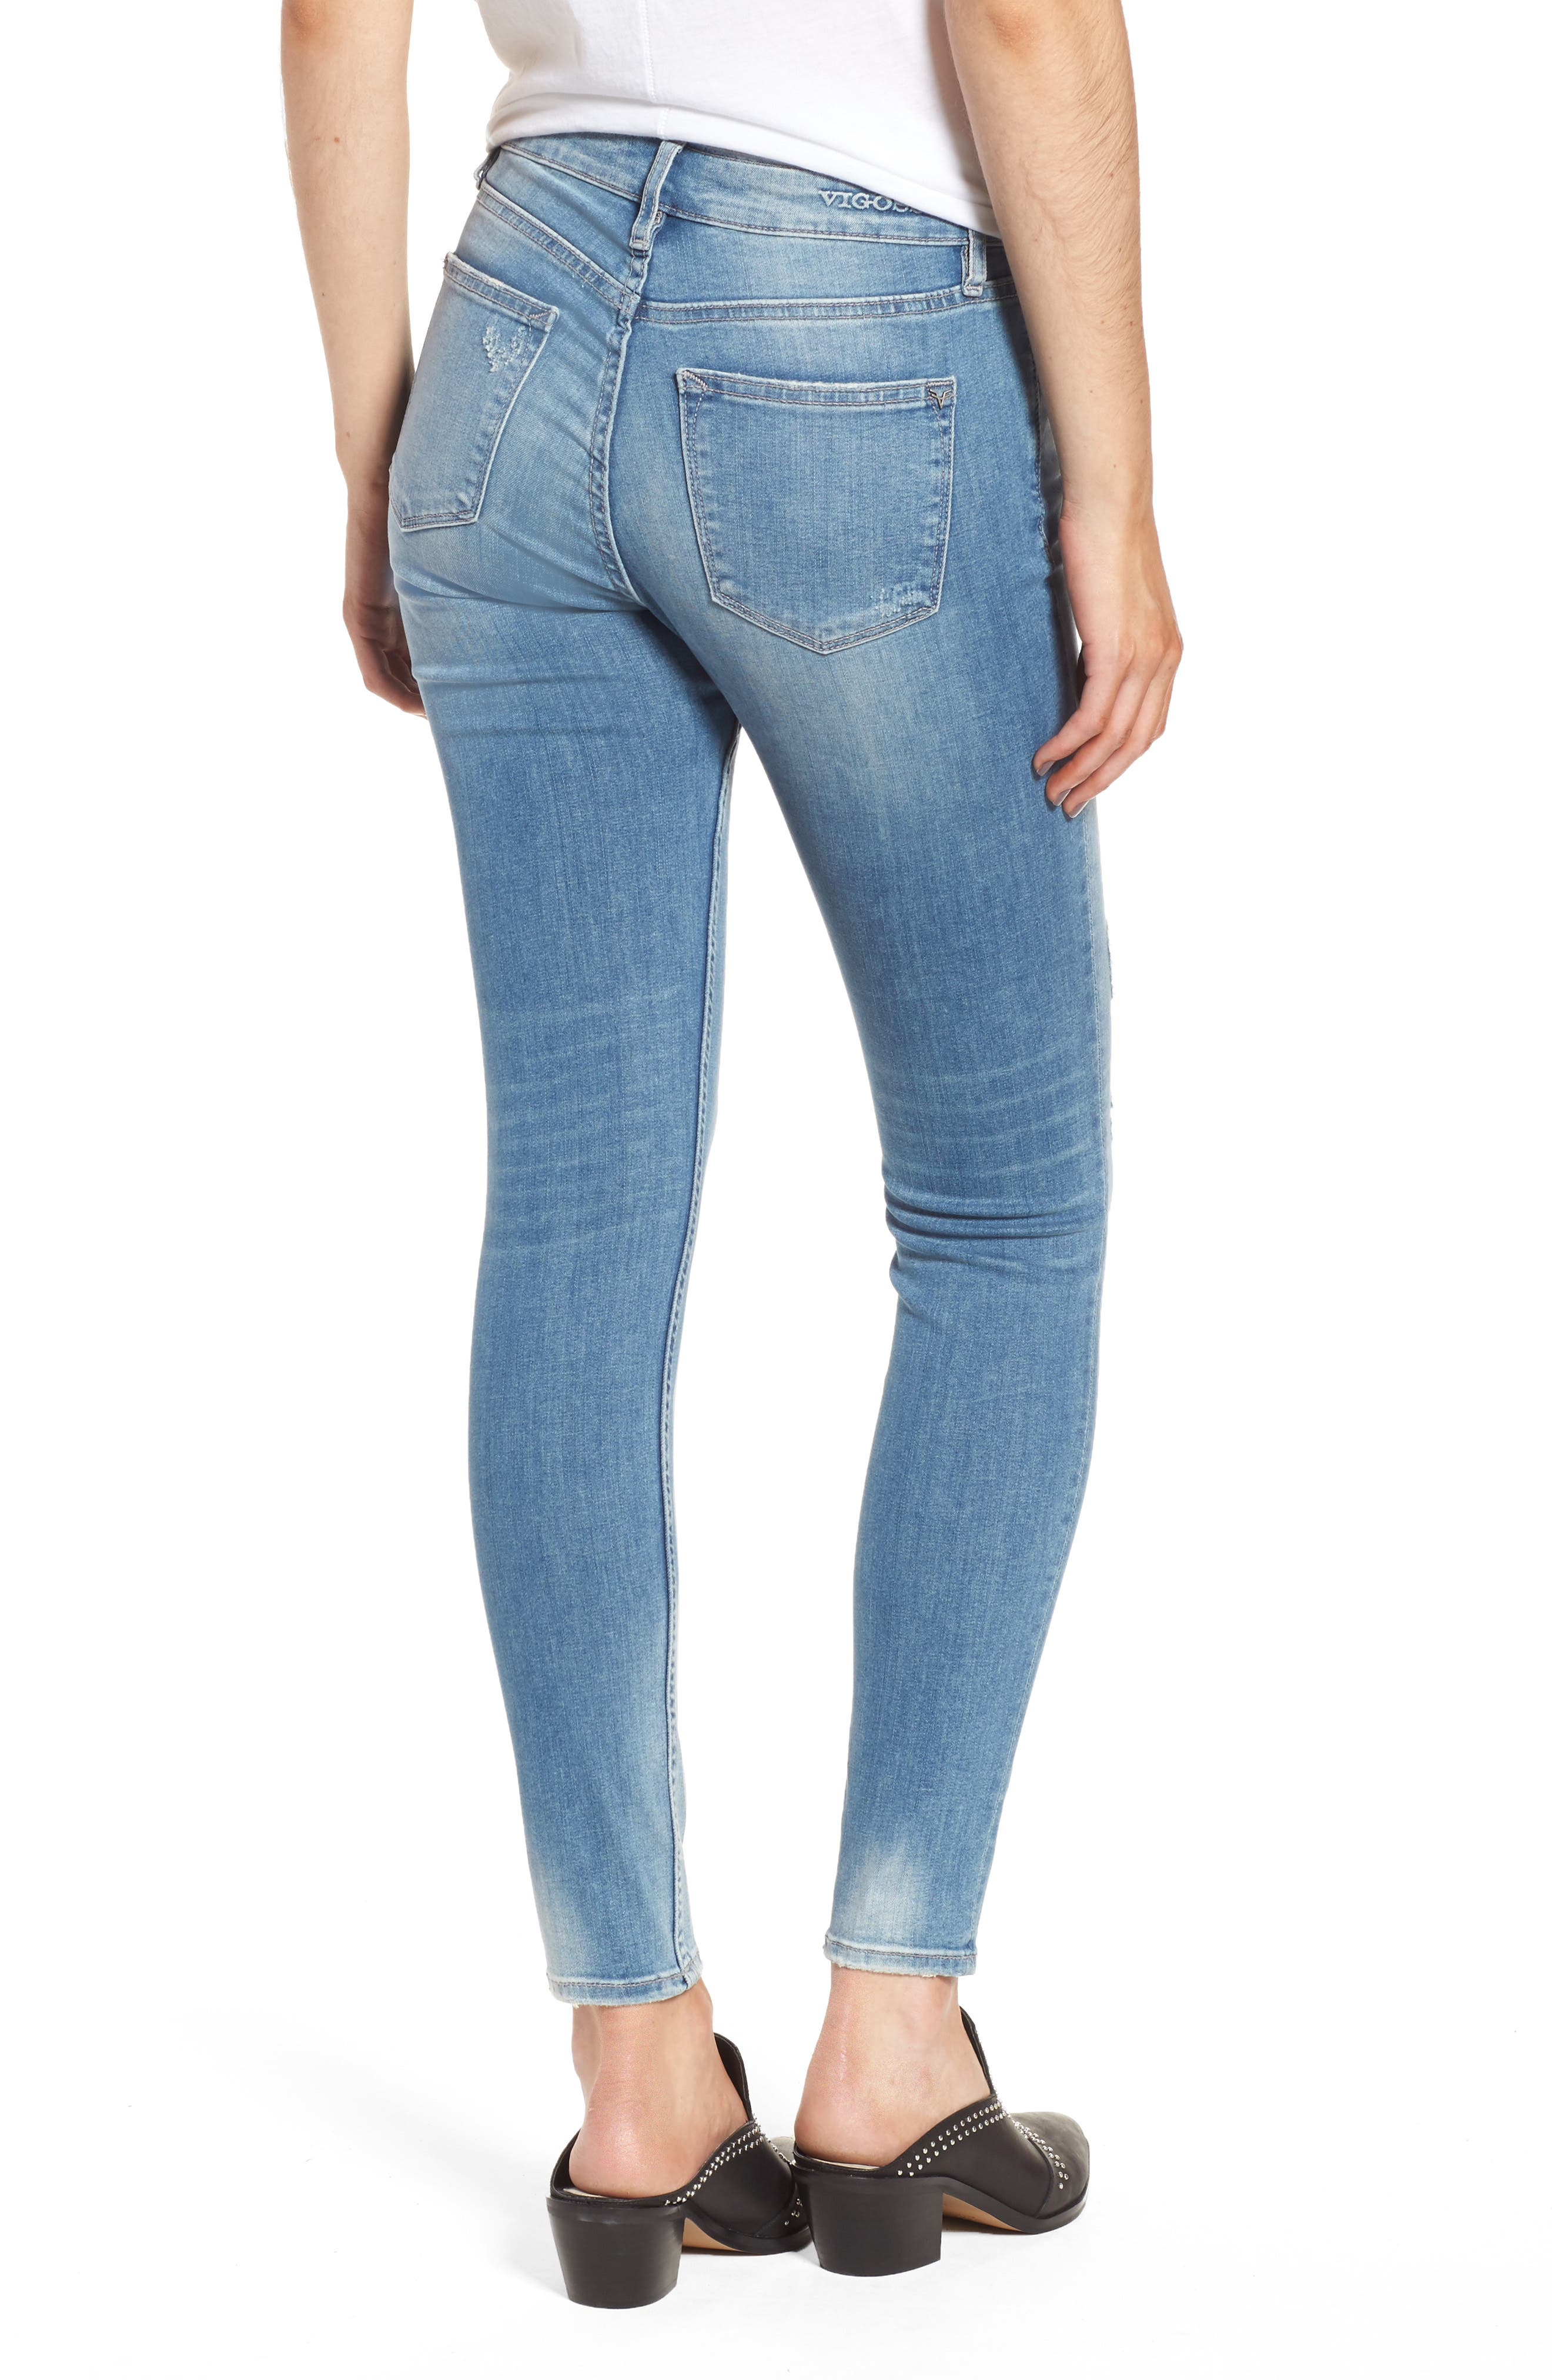 Marley Ripped Skinny Jeans,                             Alternate thumbnail 2, color,